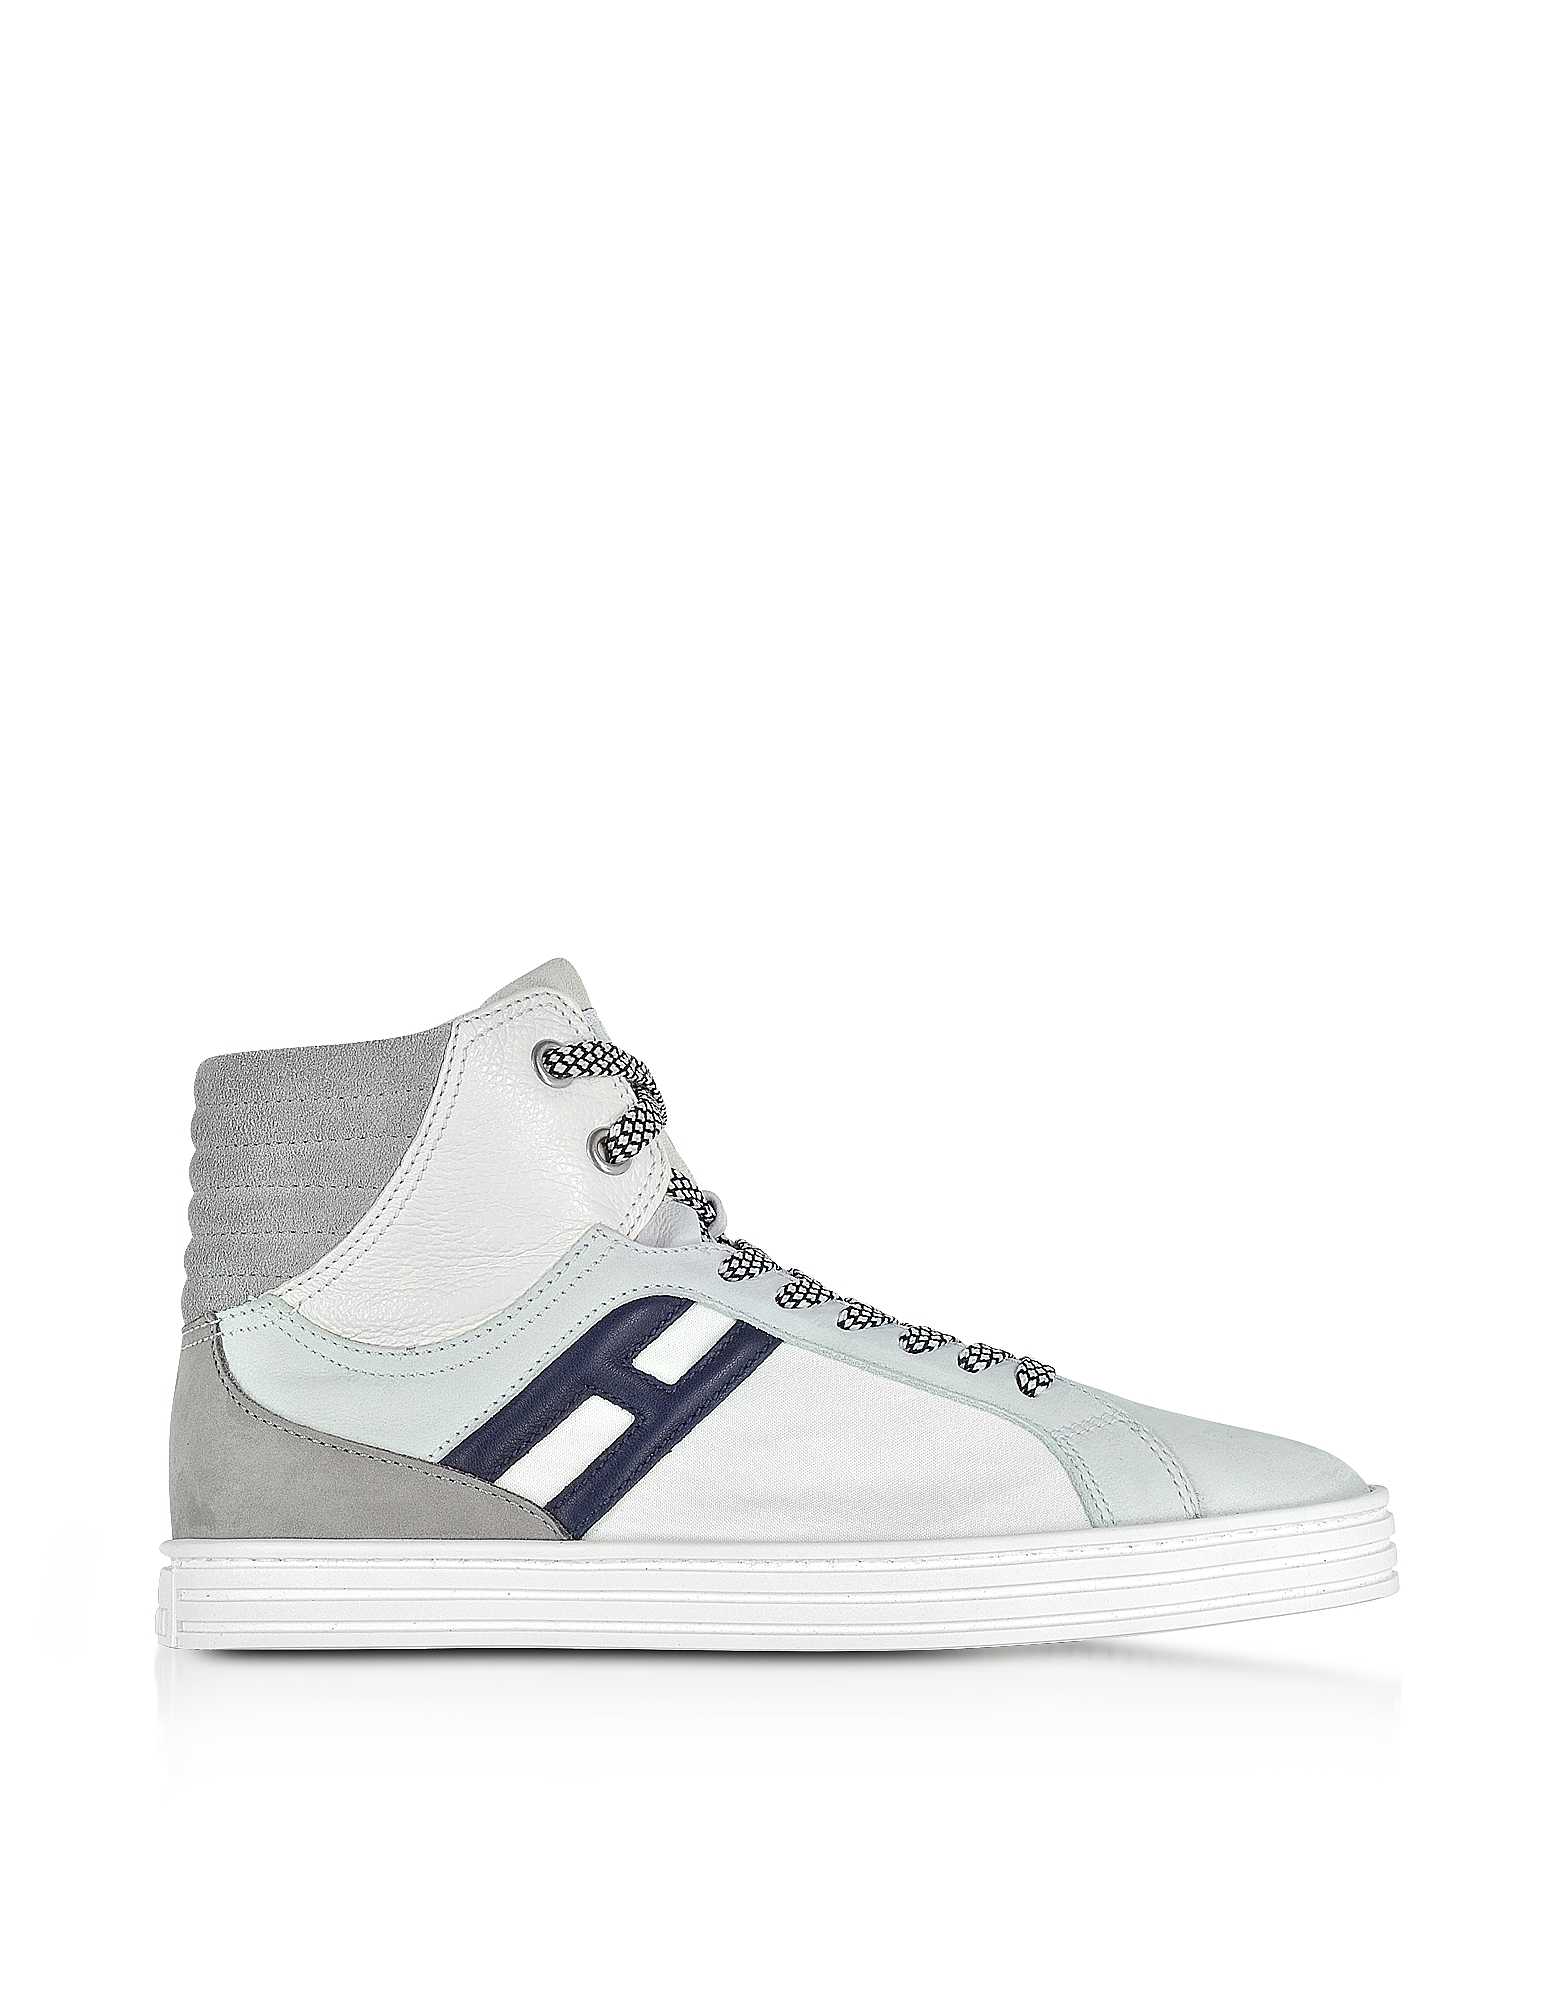 Hogan Shoes, R141 White Nylon and Leather High Top Sneakers